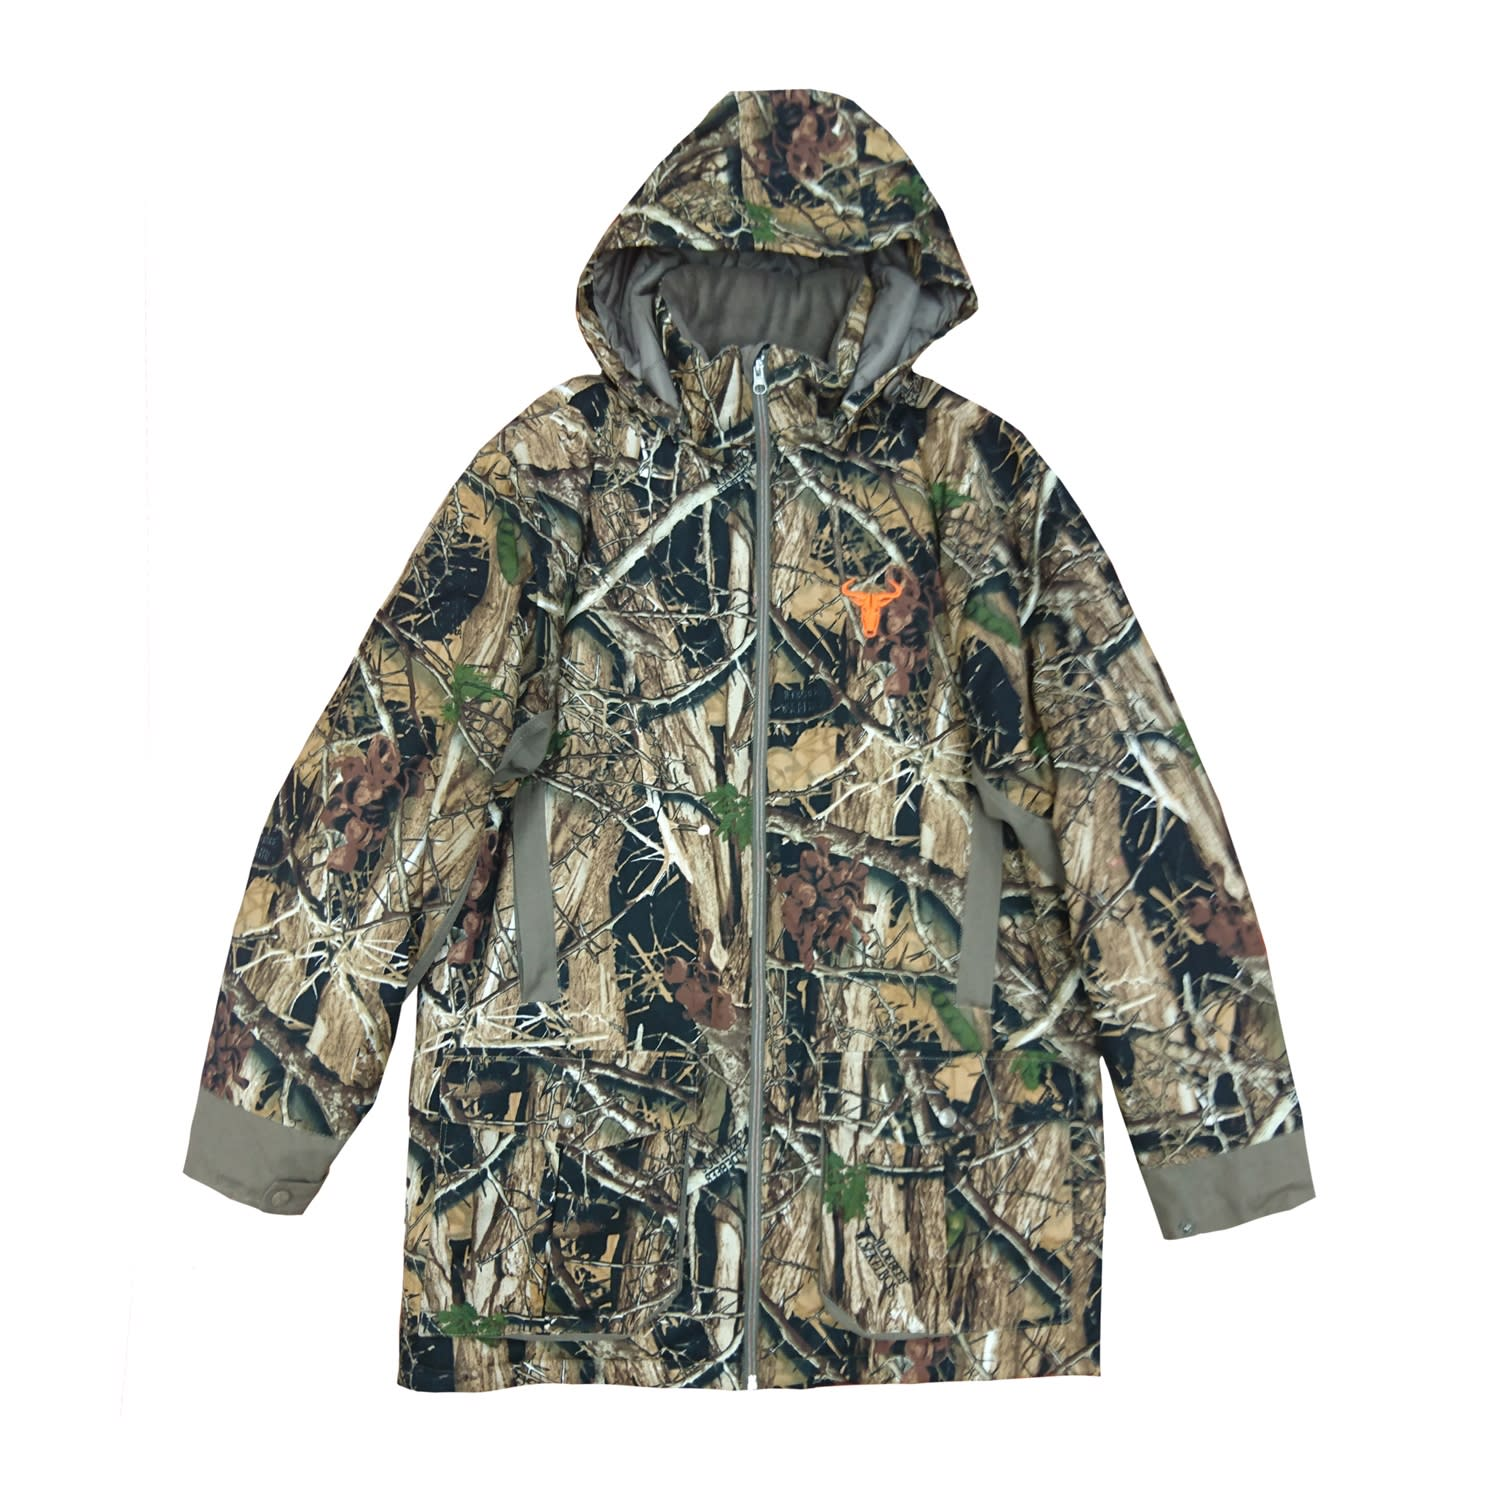 Wildebees Men's Camo Bush Jacket (3XL - 5XL)